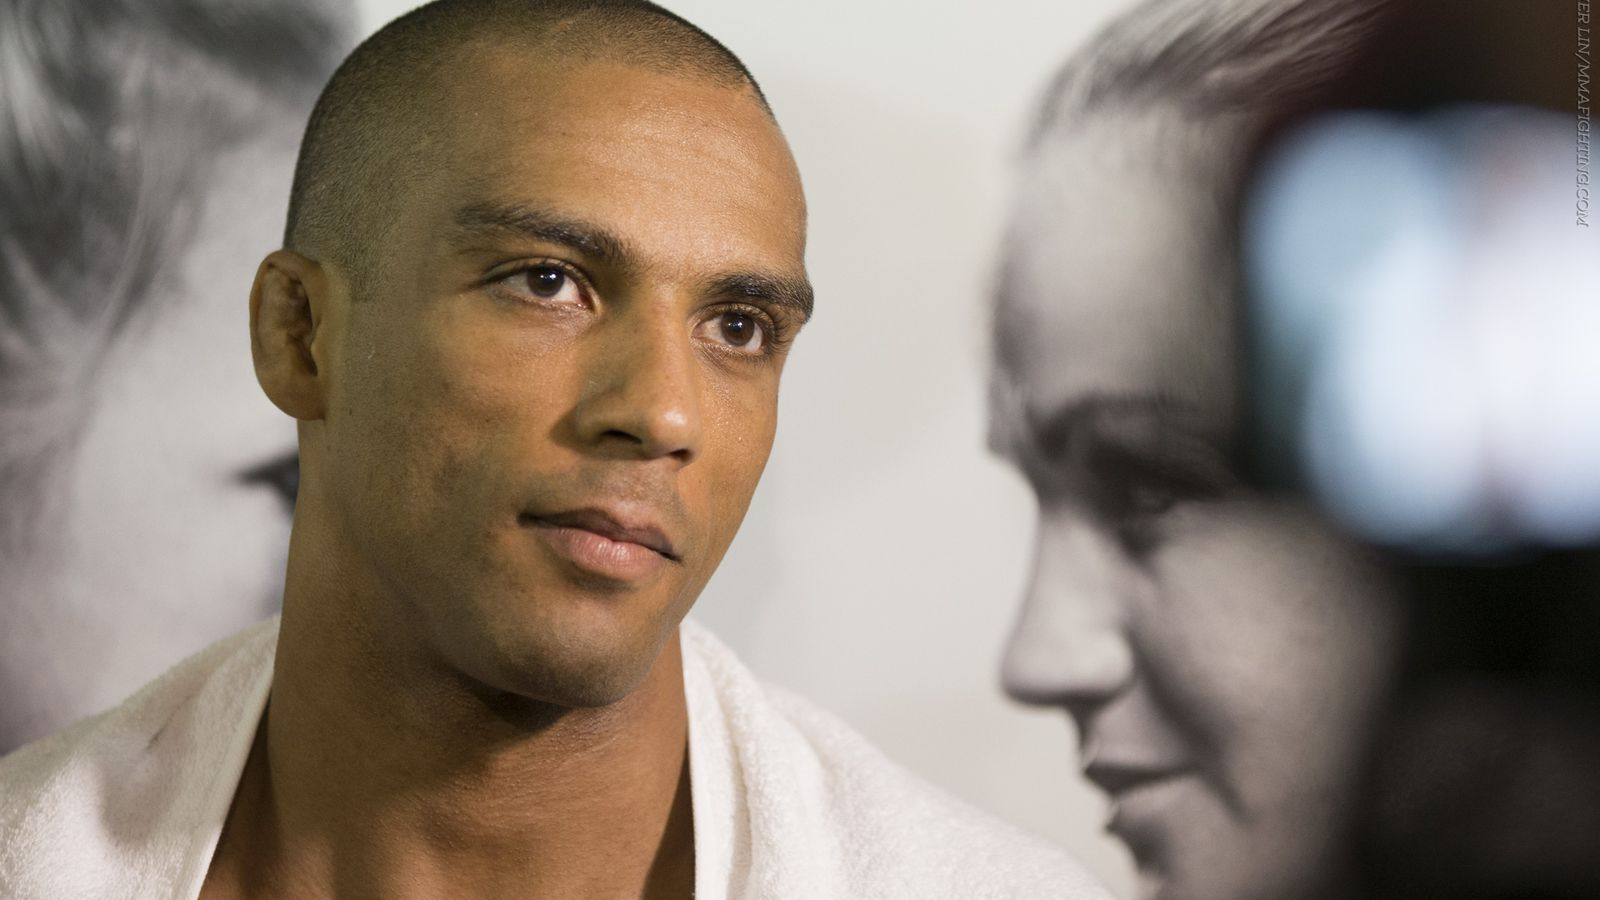 how tall is edson barboza